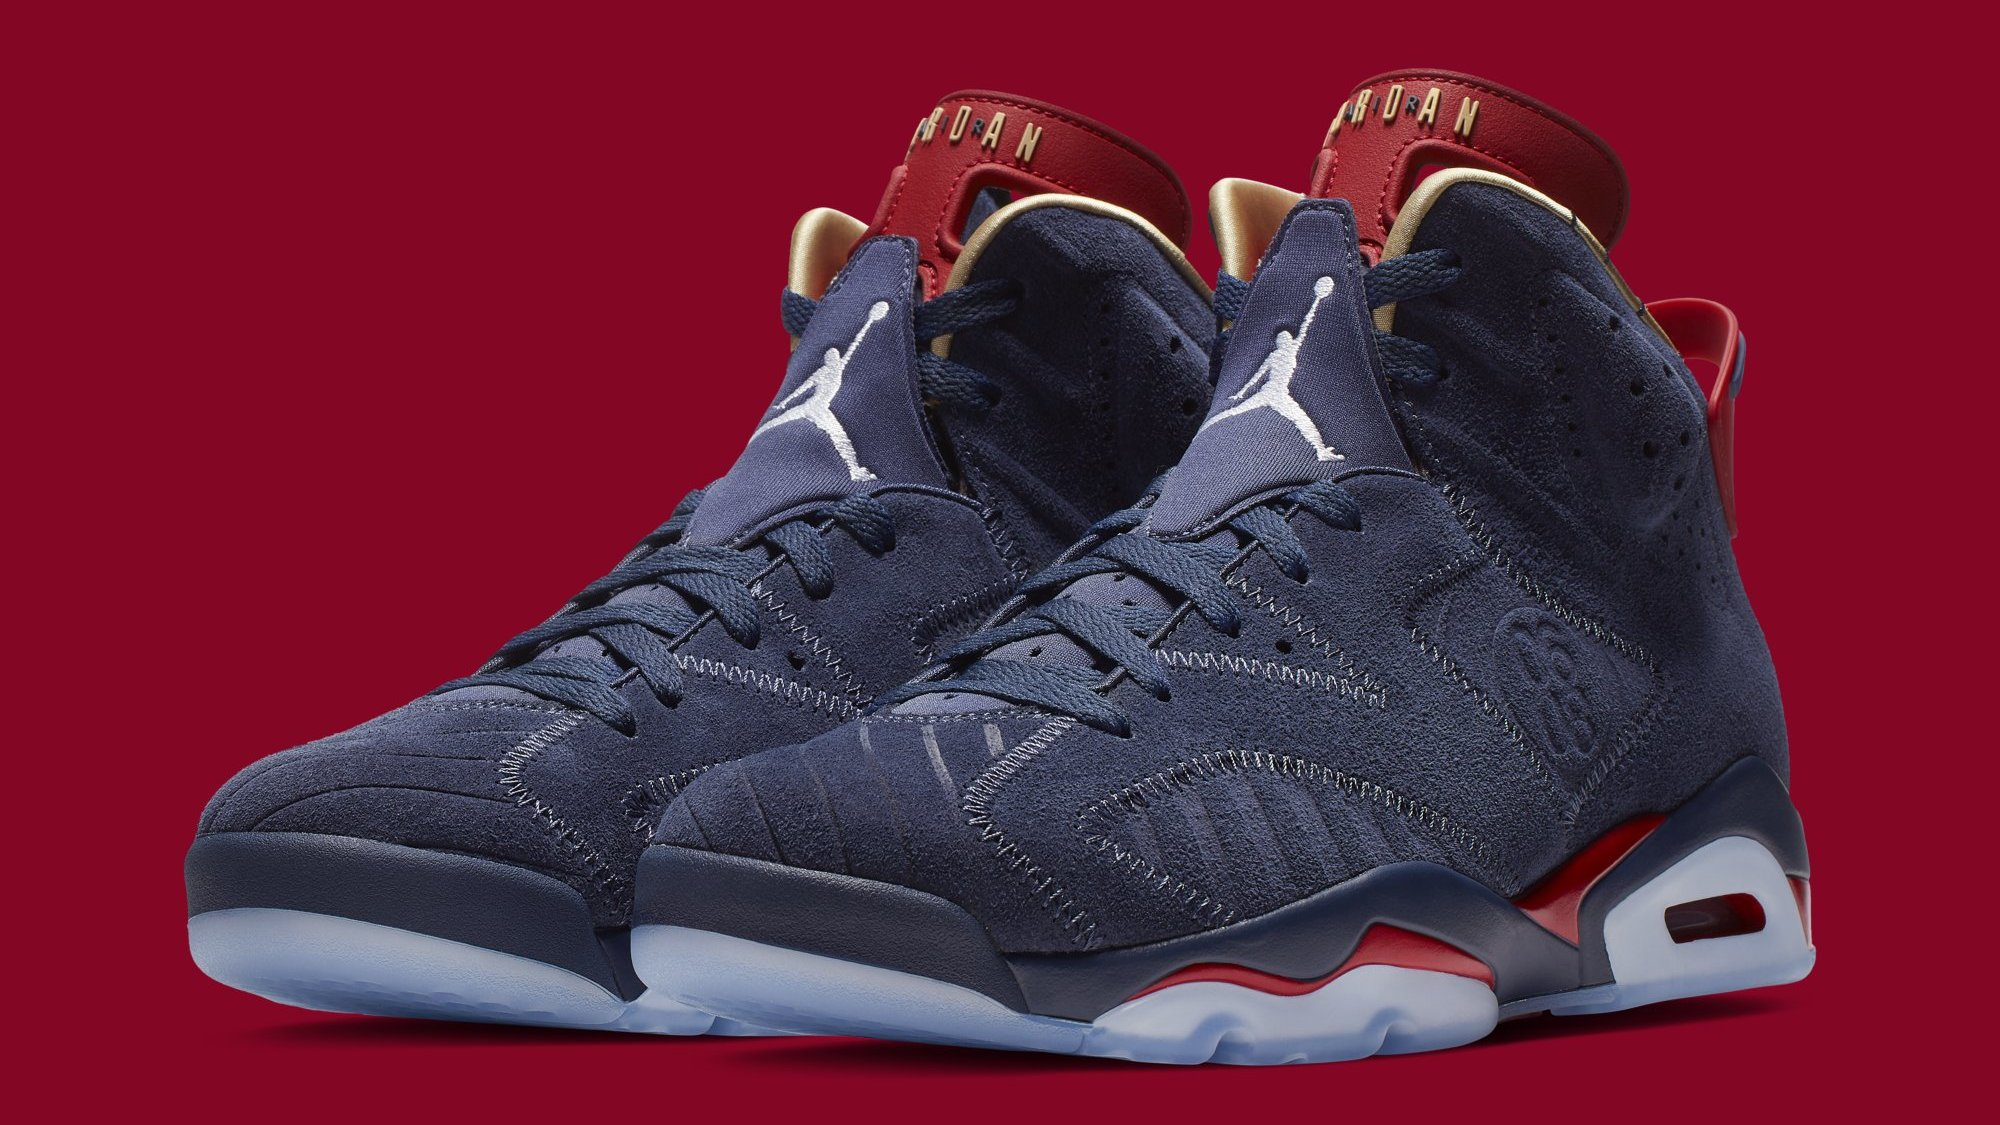 28065f982b Air Jordan 6 'Doernbecher' CI6293-416 Release Date | Sole Collector